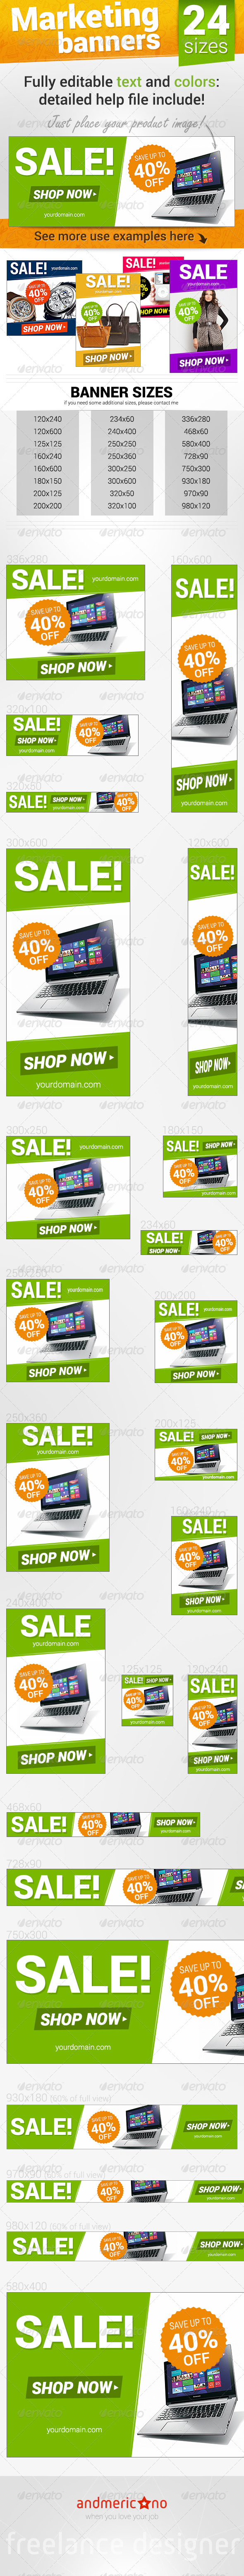 Online Marketing Banners - Banners & Ads Web Elements